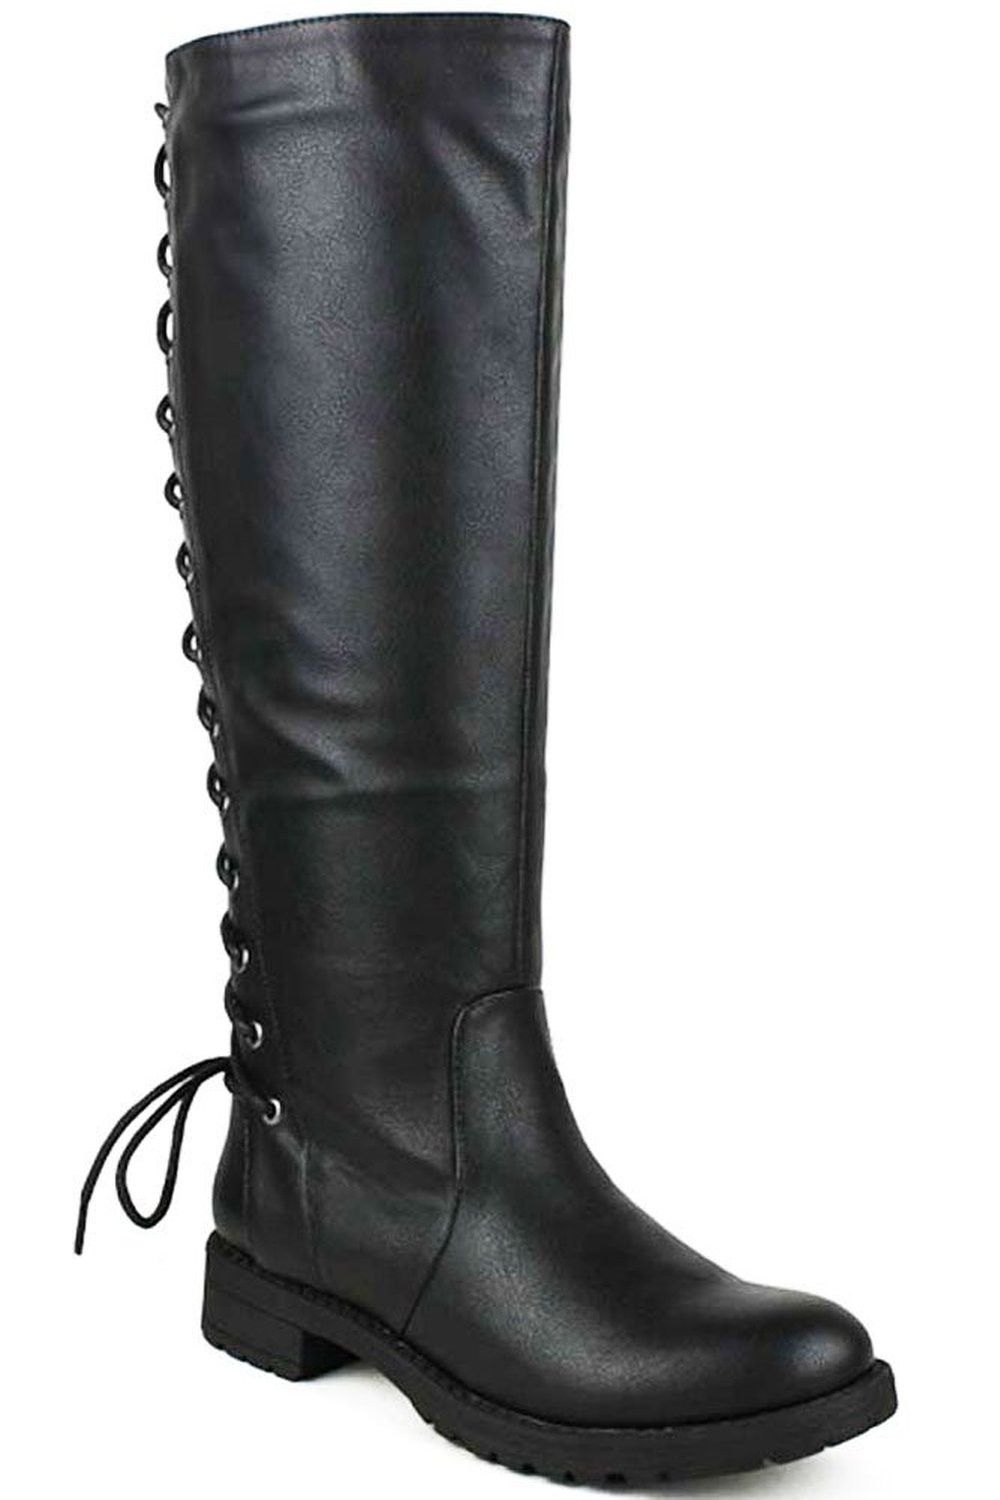 6549542c2a5 Back Lace Up Knee High Boots Winter Boots Womens Vegan